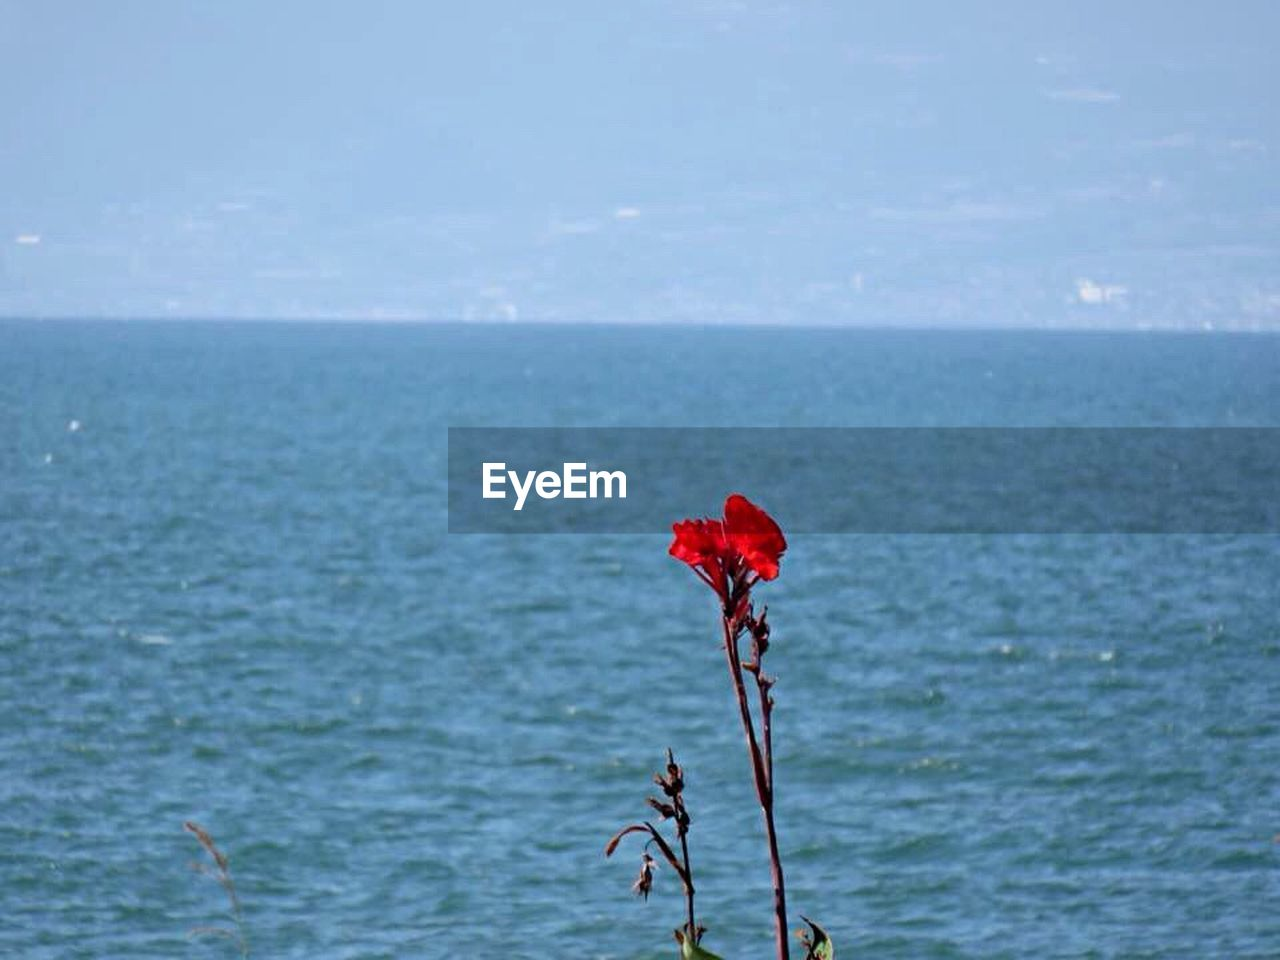 sea, nature, beauty in nature, water, red, flower, horizon over water, scenics, tranquility, outdoors, day, tranquil scene, no people, growth, plant, fragility, sky, close-up, freshness, flower head